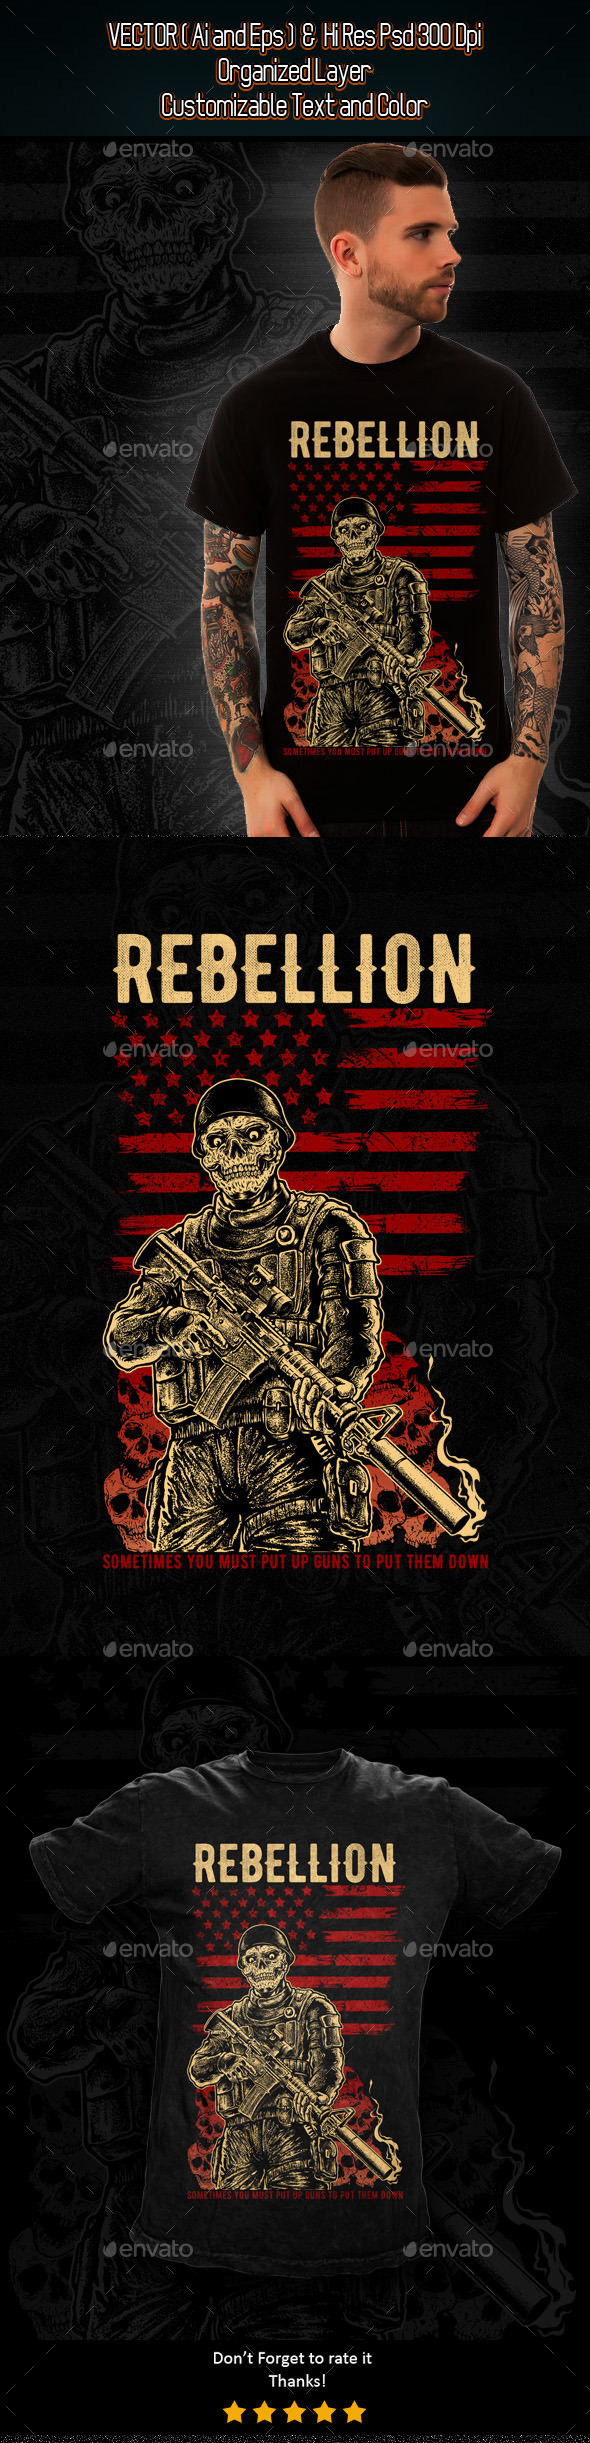 Rebellion - Grunge Designs